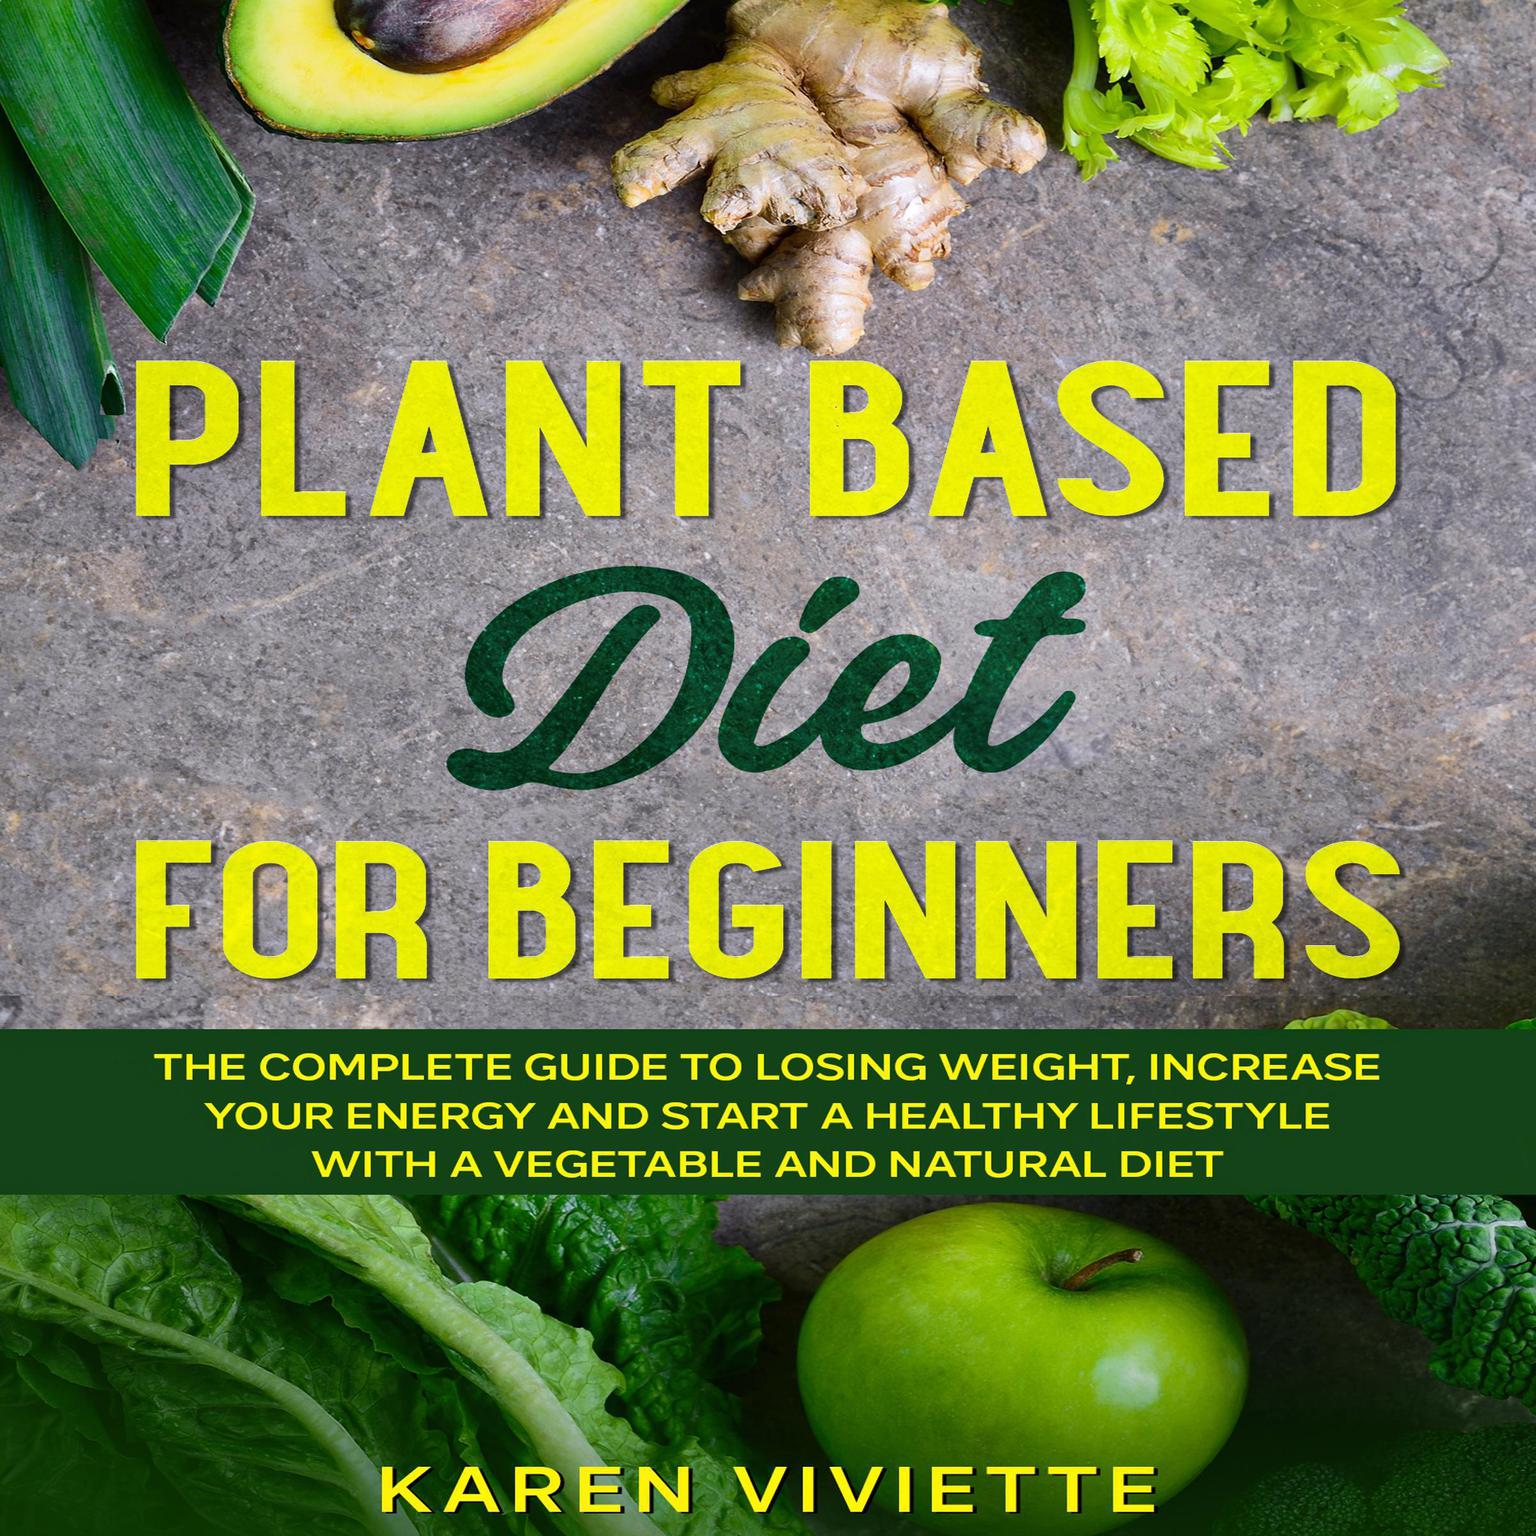 Plant Based Diet For Beginners: The Complete Guide to Losing Weight, Increase Your Energy and Start a Healthy Lifestyle with a Vegetable and Natural Diet Audiobook, by Karen Viviette